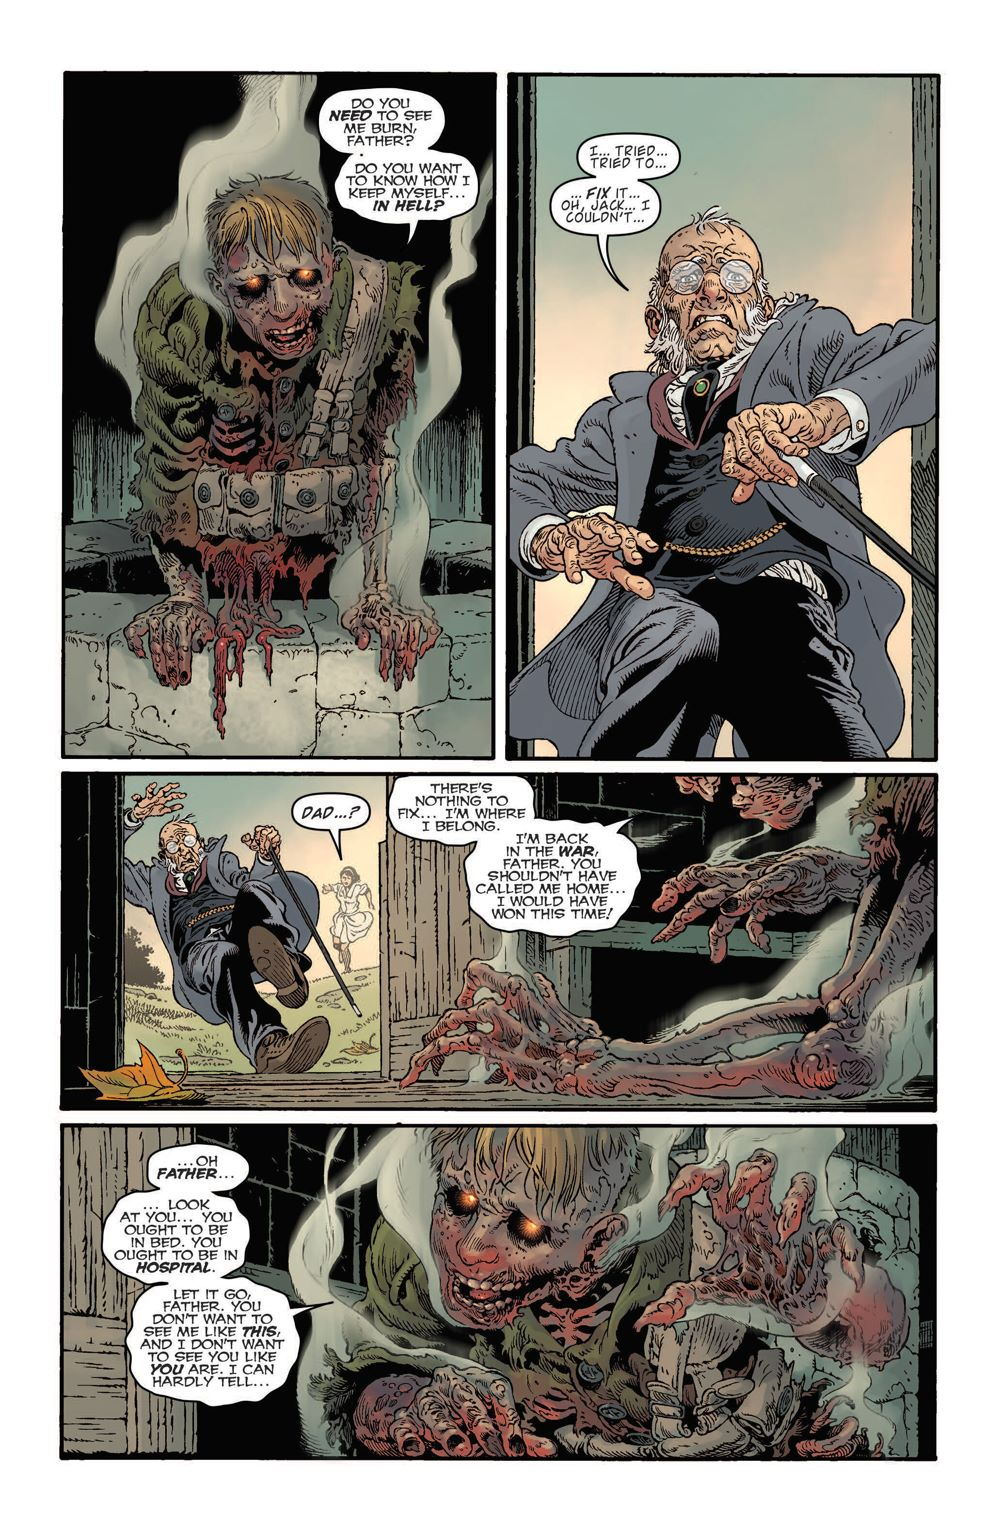 dec8cf67-6f96-4d74-8232-e36afdeb468c First Look at IDW Publishing's LOCKE AND KEY THE SANDMAN UNIVERSE HELL AND GONE #1